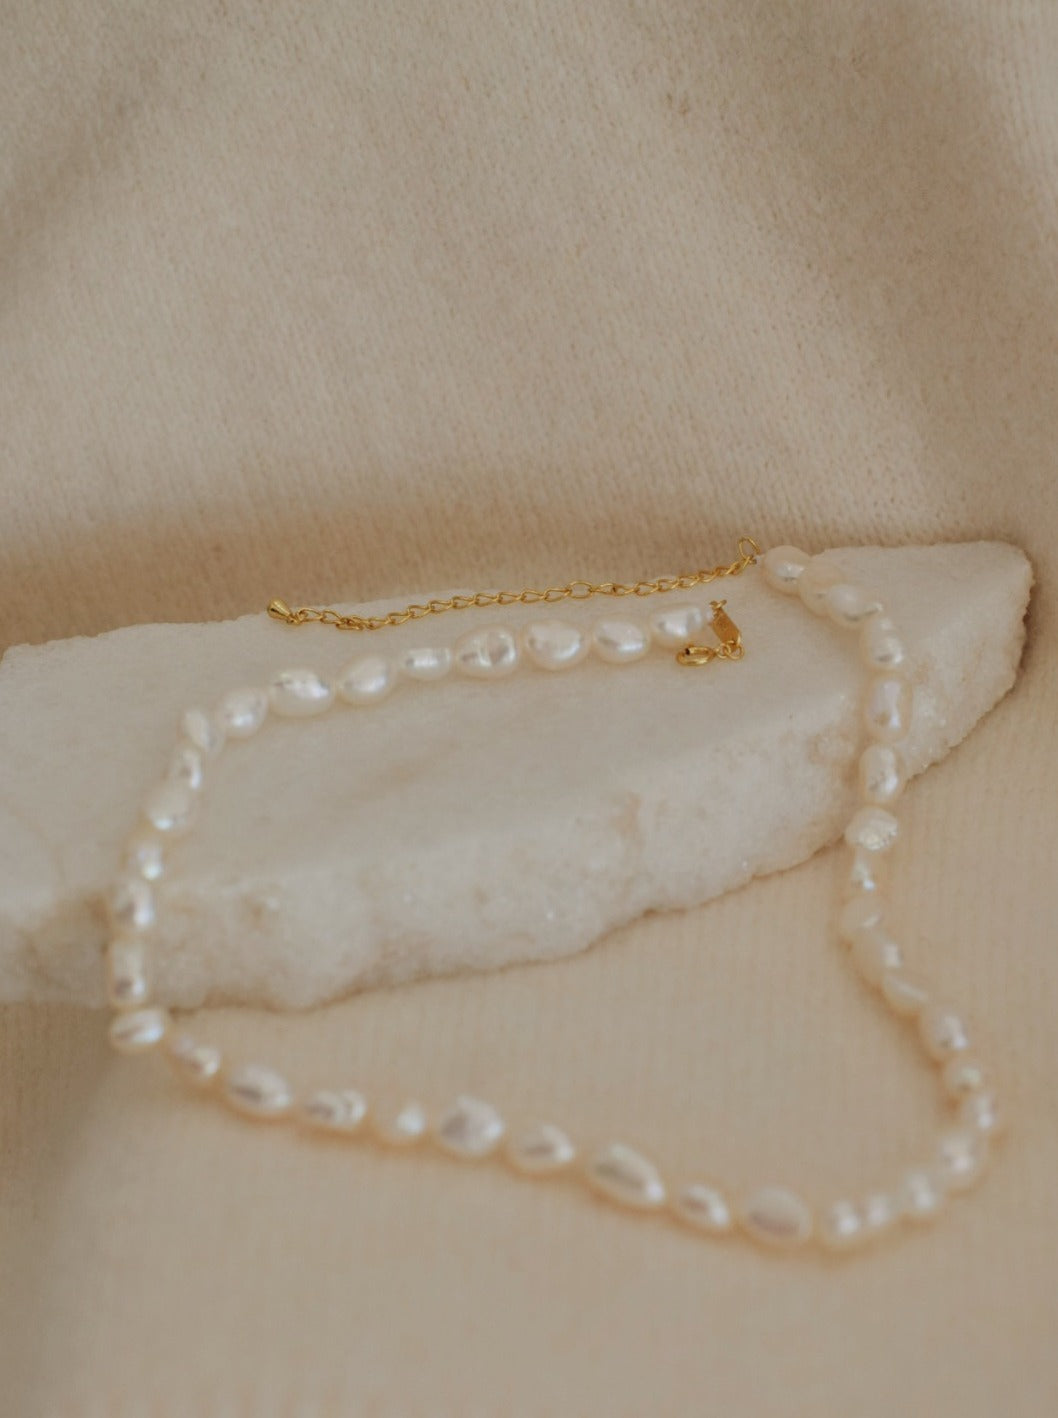 Cultured baroque freshwater pearl necklace with gold plated hardware